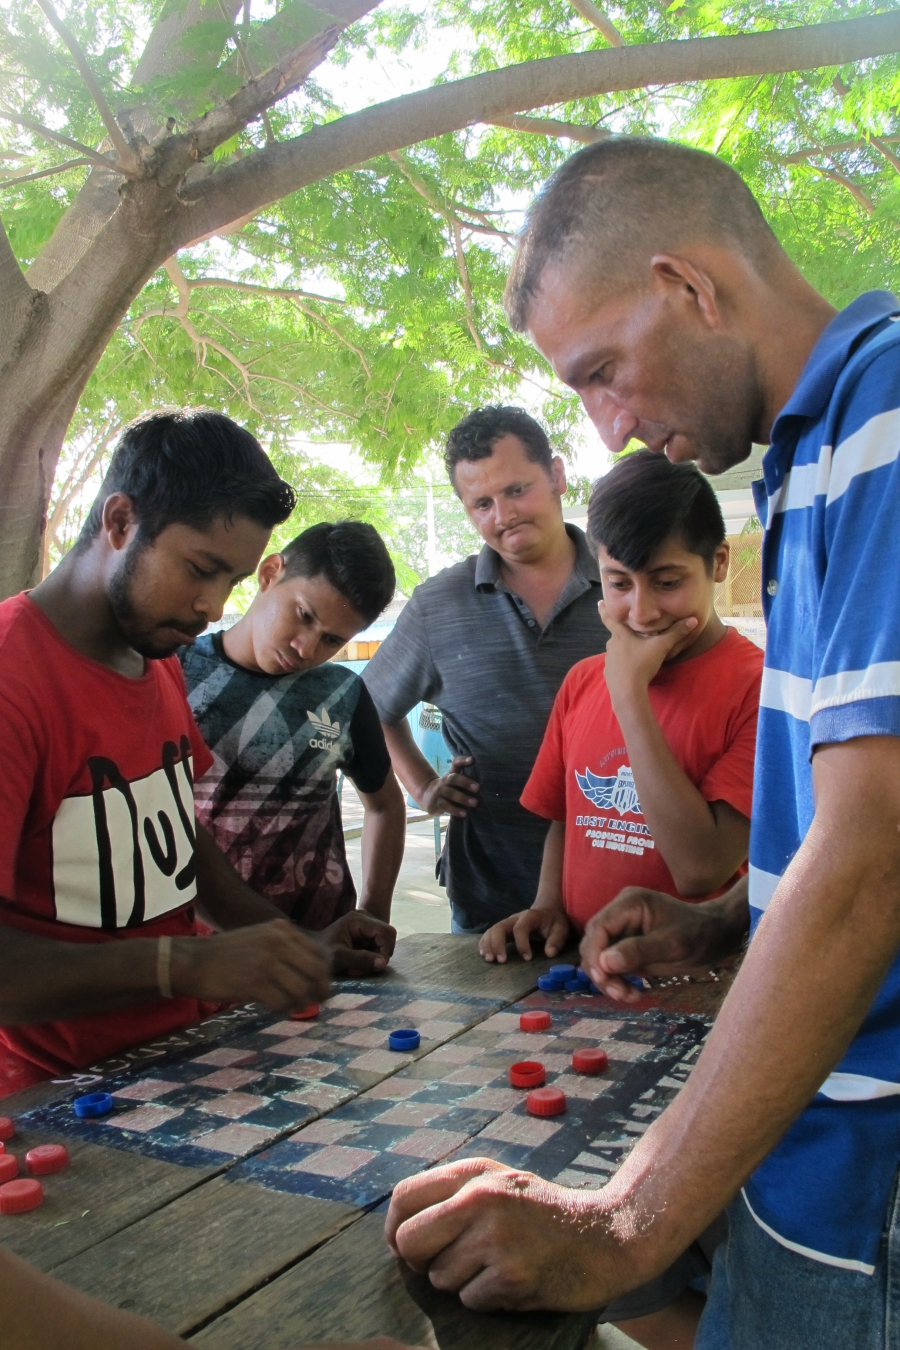 Many Central American migrants pass the days playing competitive games of checkers at the local migrant shelter in Ixtepec, Mexico. The city, as well as the surrounding region, was devastated by last September's earthquakes.